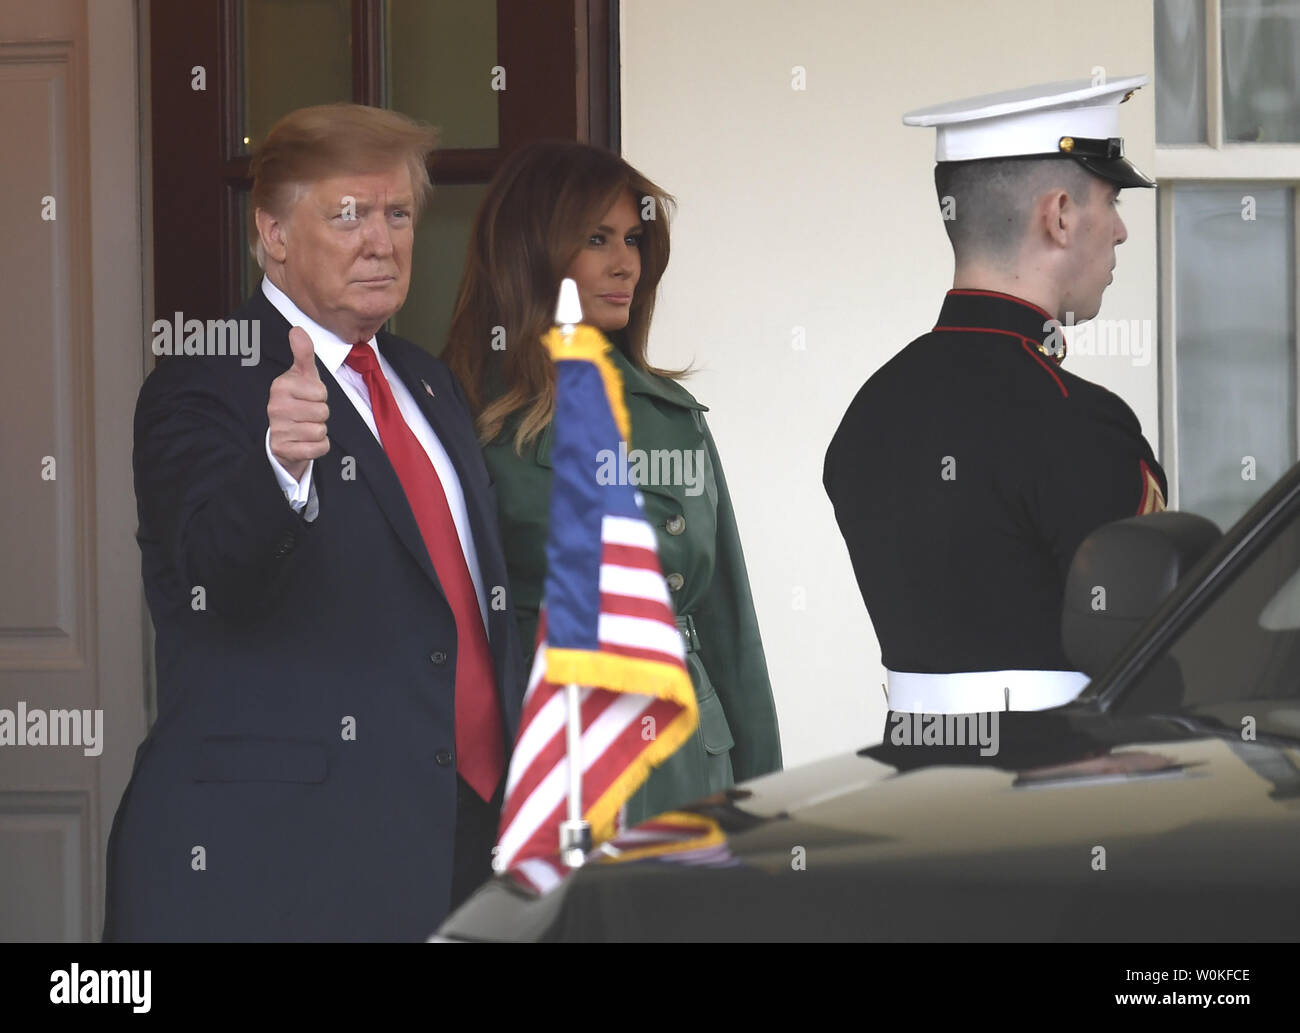 President Donald Trump gives a thumbs up to the press as he and First Lady Melania Trump bid goodbye to Czech Prime Minister Andrej Babis as he departs the White House, March 7, 2019, in Washington, DC. The Czech Republic is a member of NATO, and talks were expected to include the conflict in Syria.      Photo by Mike Theiler/UPI - Stock Image